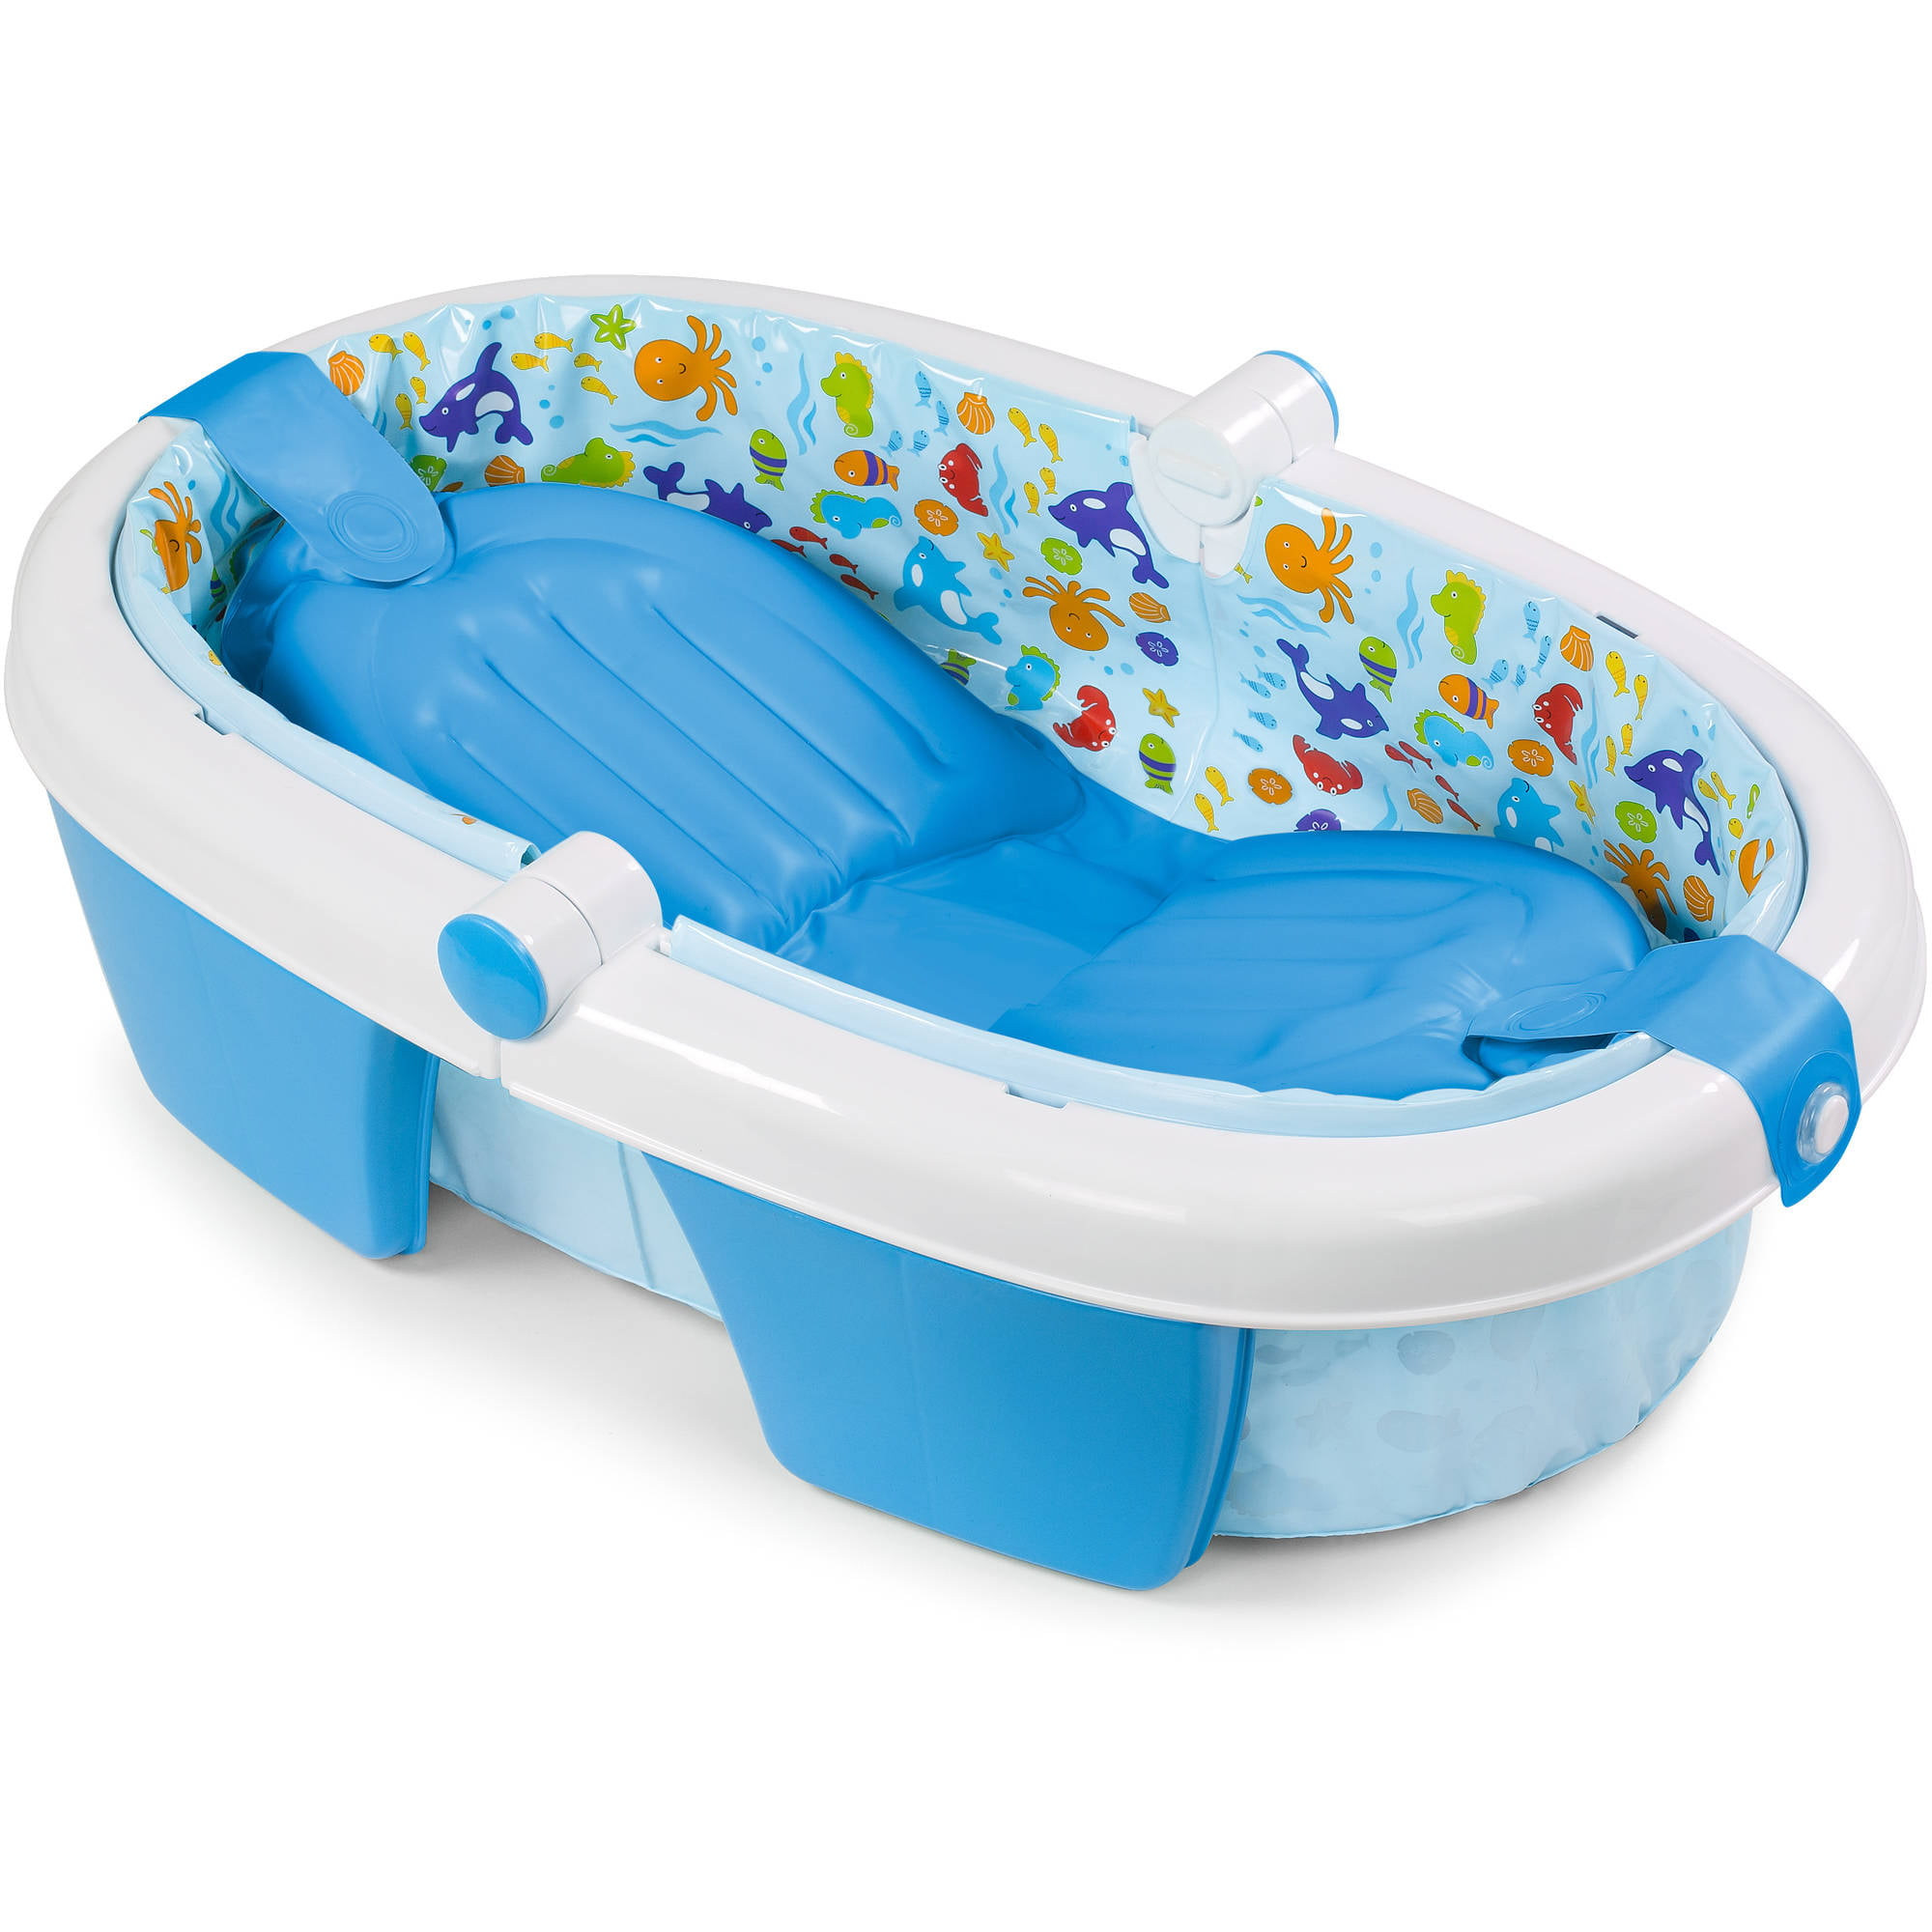 Summer Infant Newborn to Toddler Fold Away Baby Bath - Walmart.com